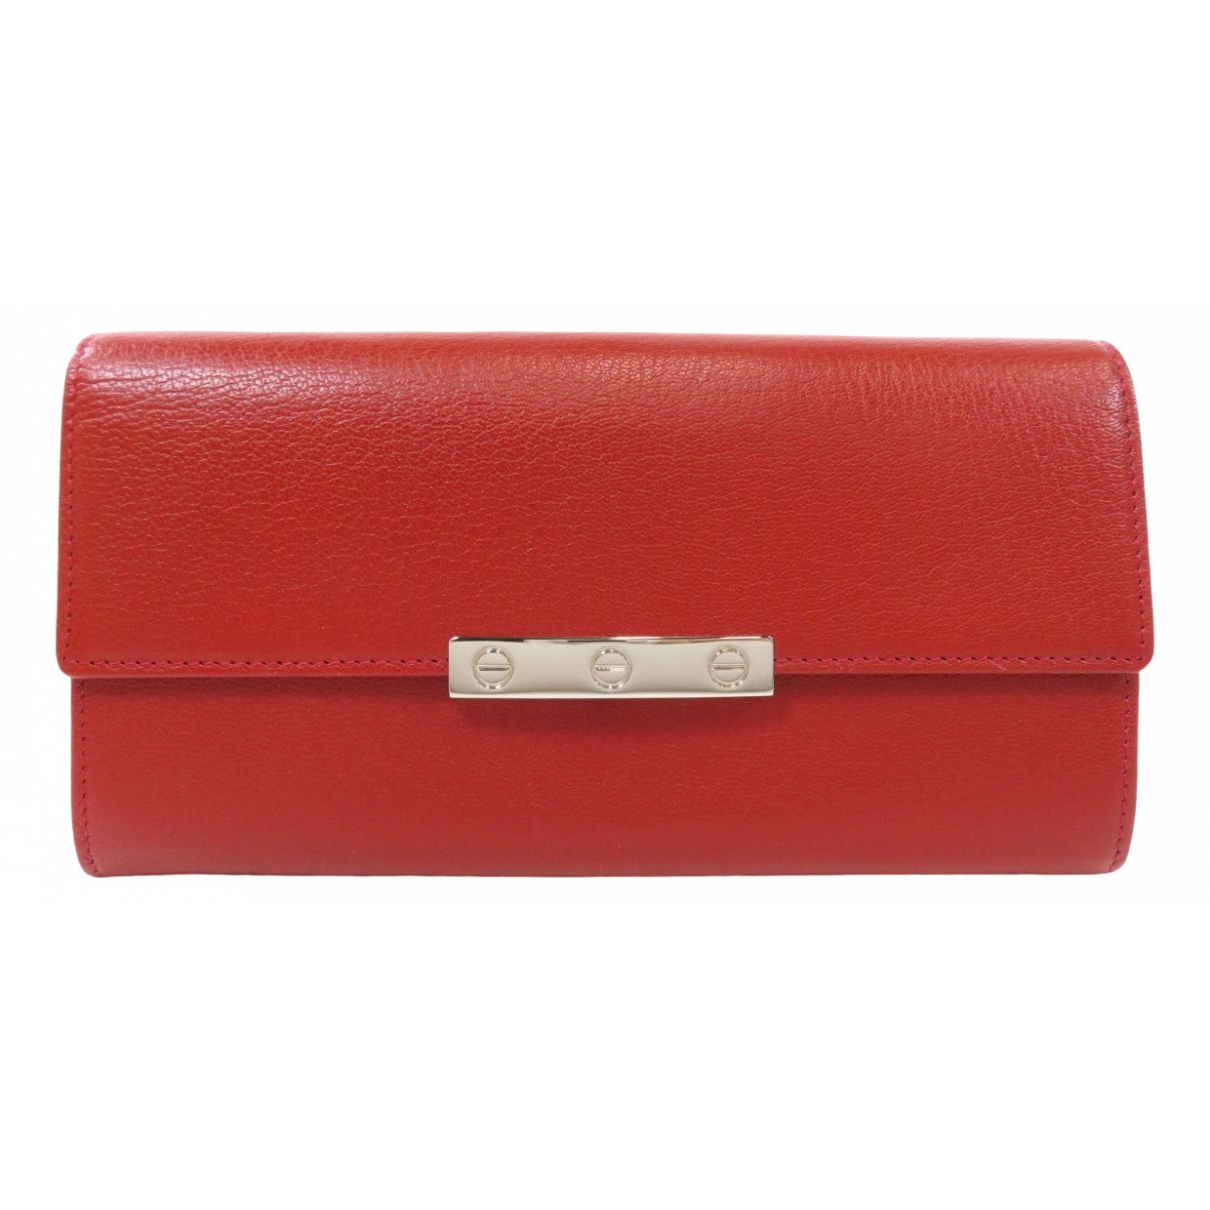 Cartier \N Red Leather wallet for Women \N